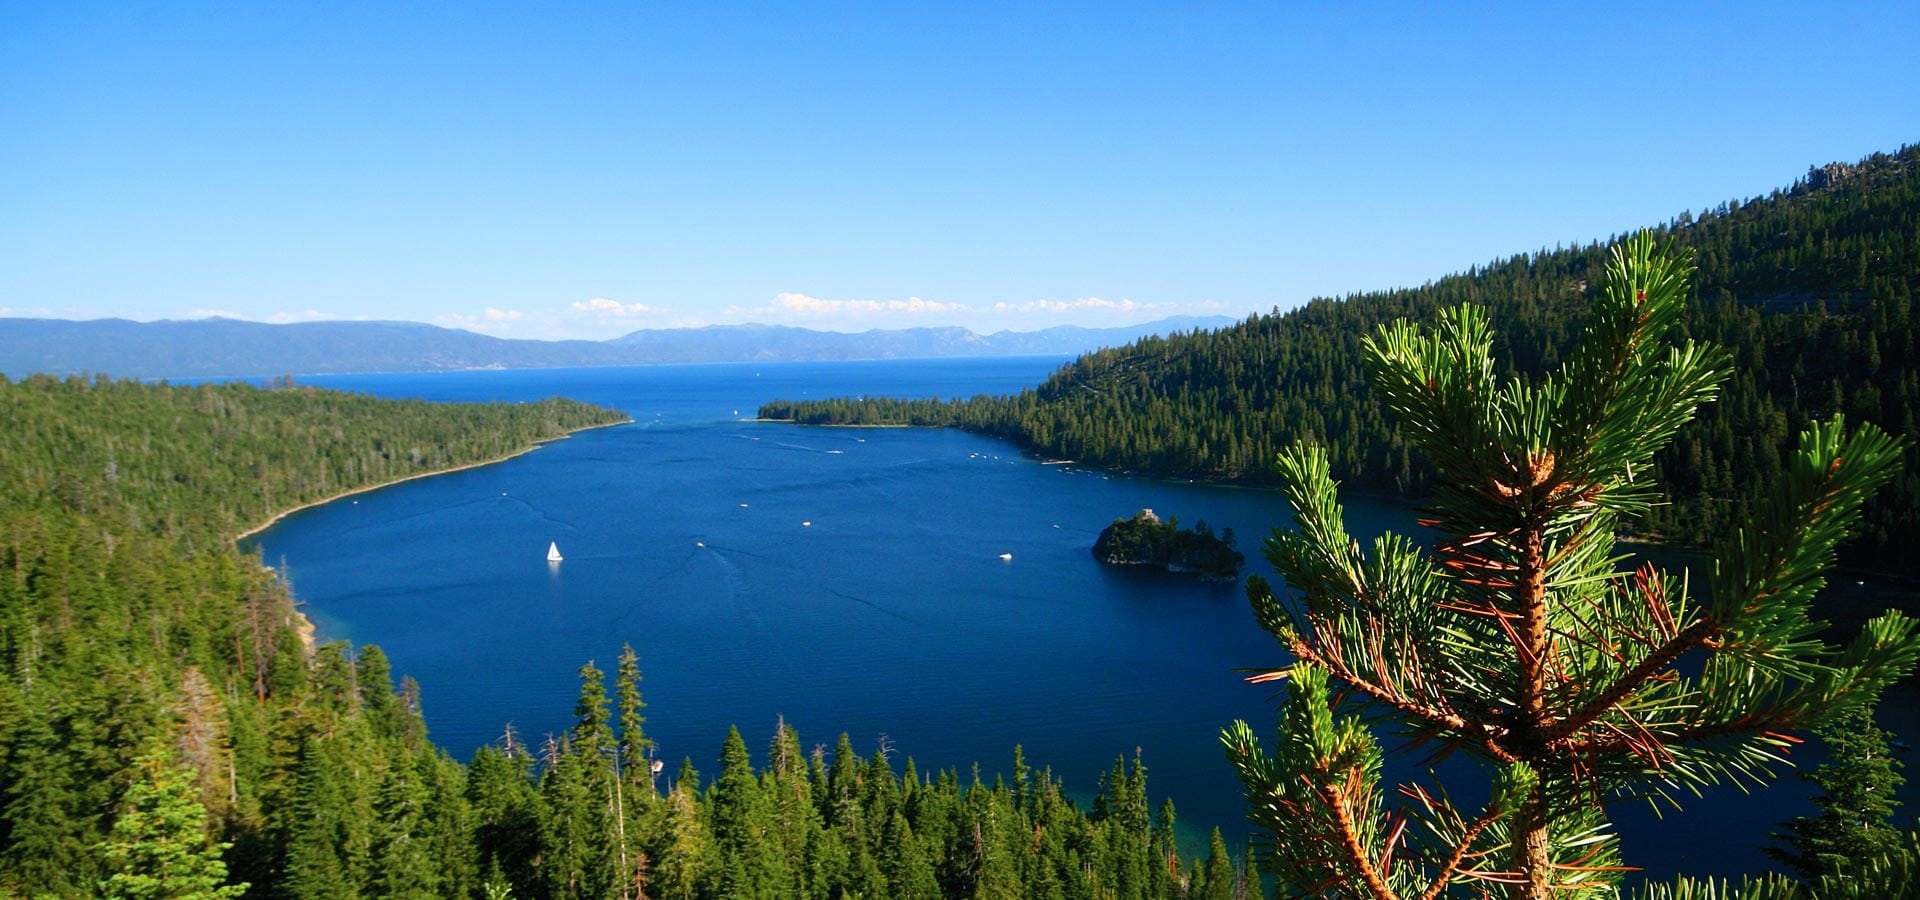 Beautiful Lake Tahoe during the summer months